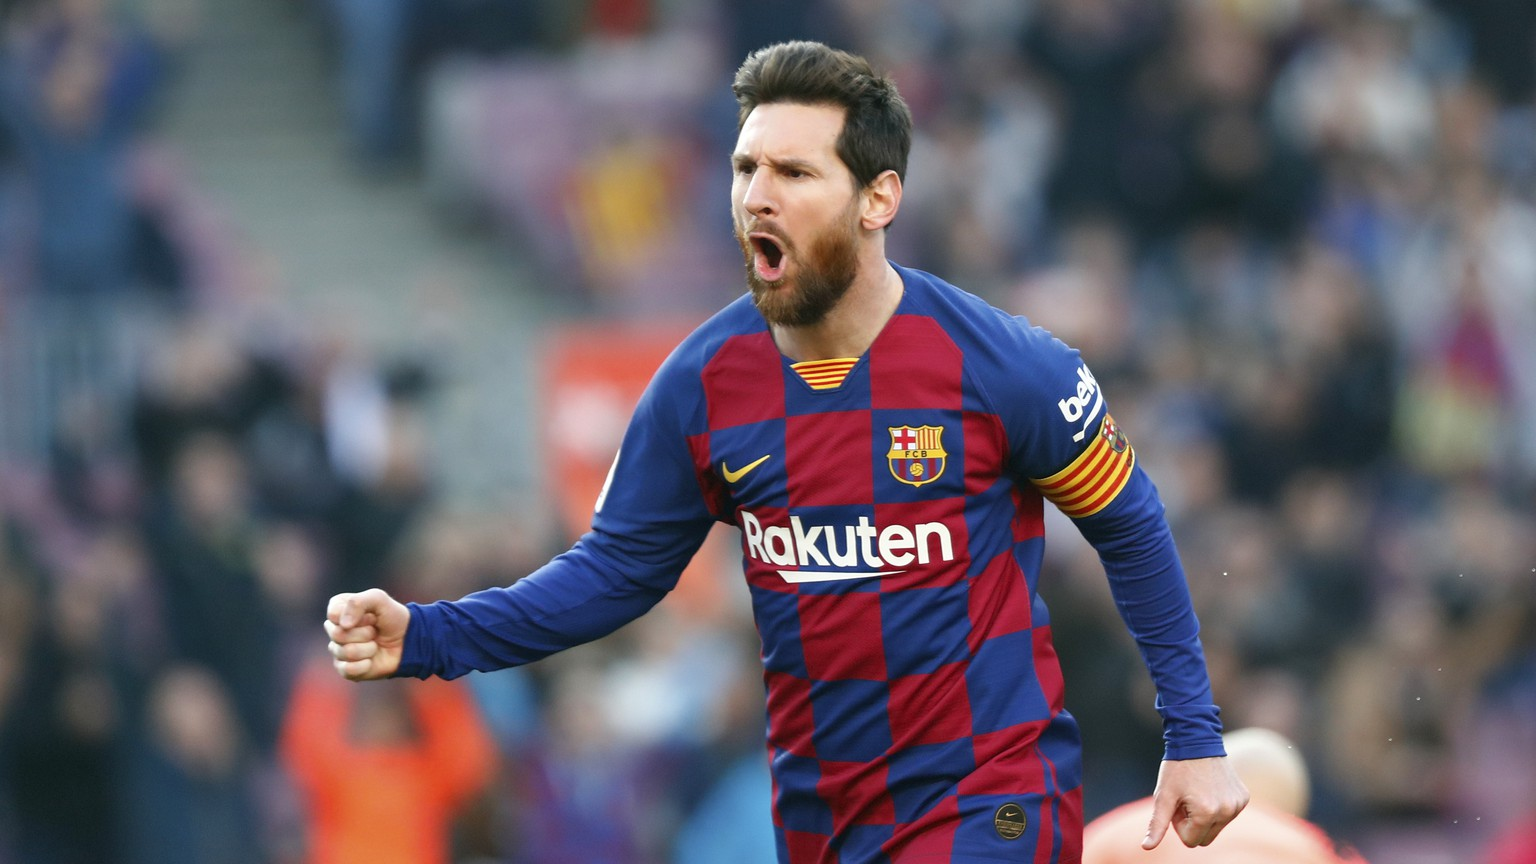 Barcelona's Lionel Messi celebrates after scoring his side's opening goal during a Spanish La Liga soccer match between Barcelona and Eibar at the Camp Nou stadium in Barcelona, Spain, Saturday Feb. 22, 2020. (AP Photo/Joan Monfort)